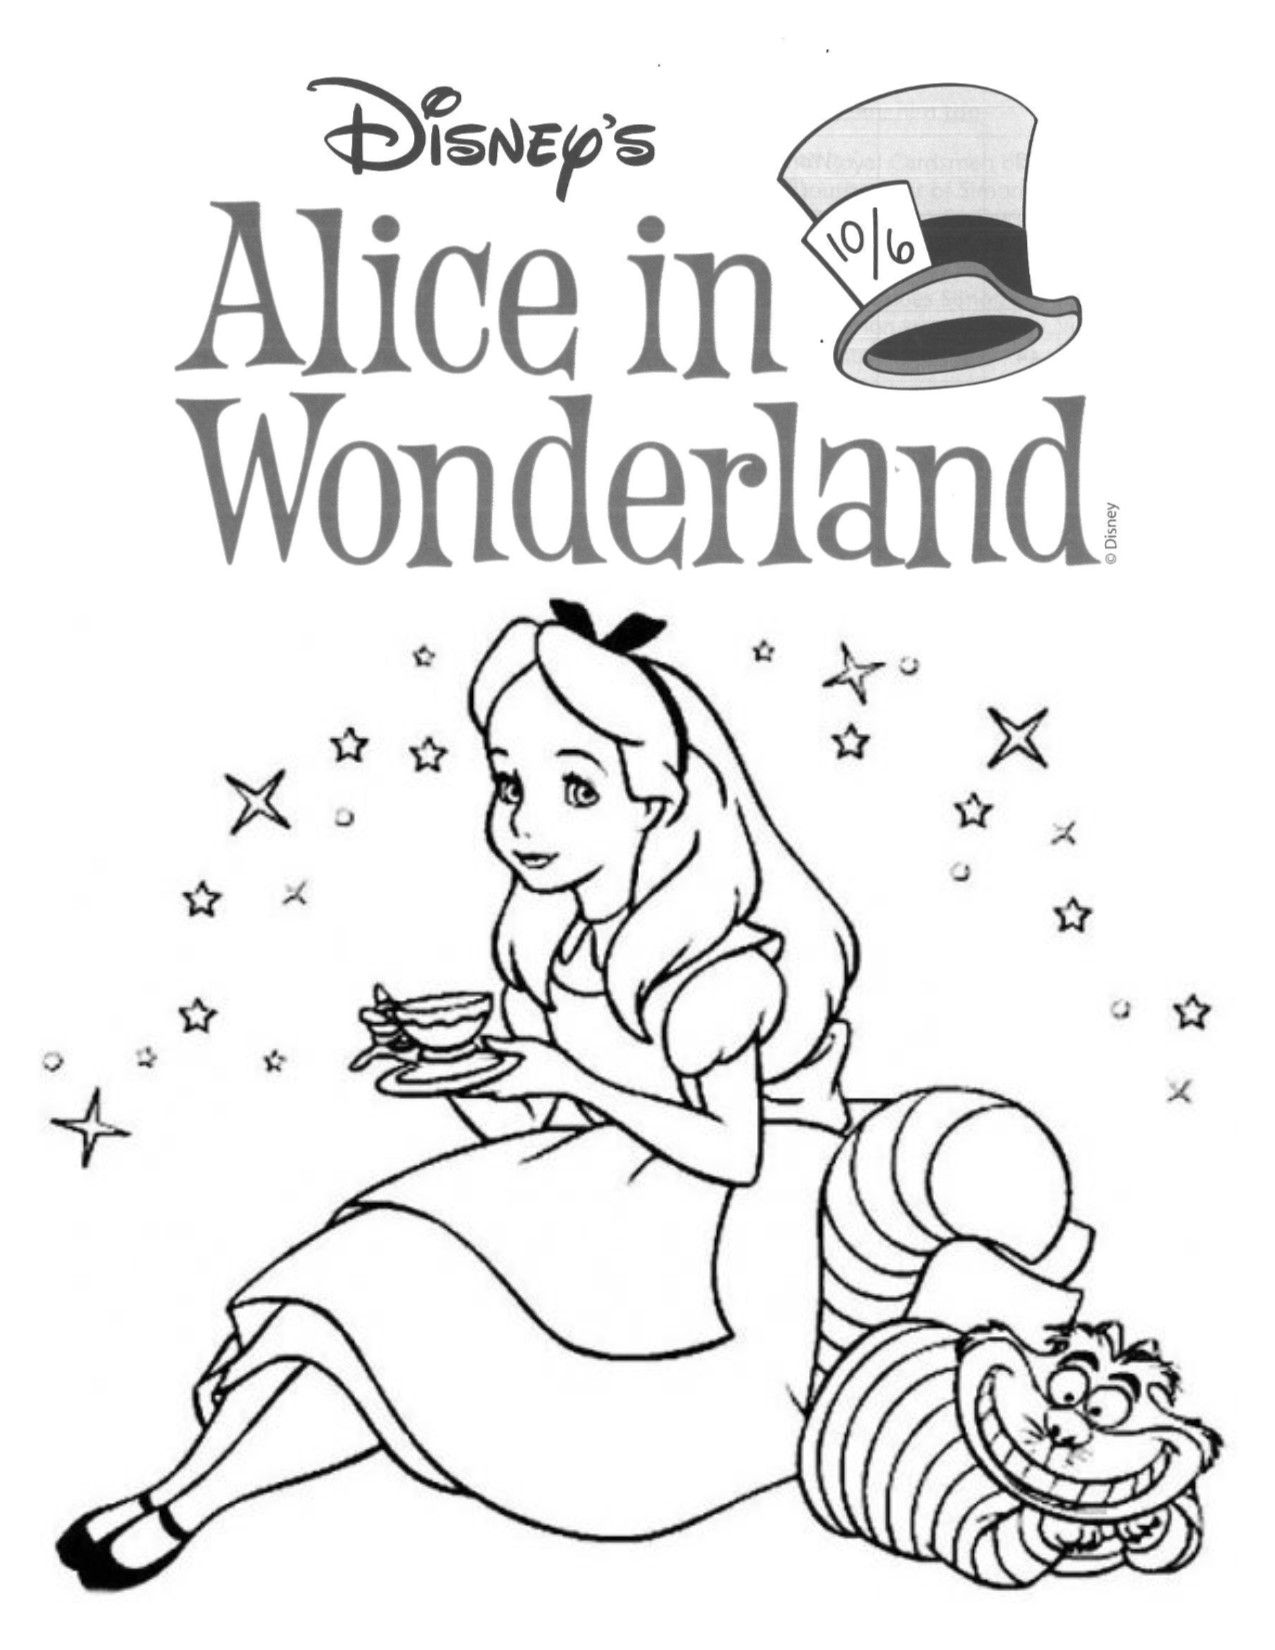 Alice in Wonderland | Disney Coloring Pages: Movie Covers ...